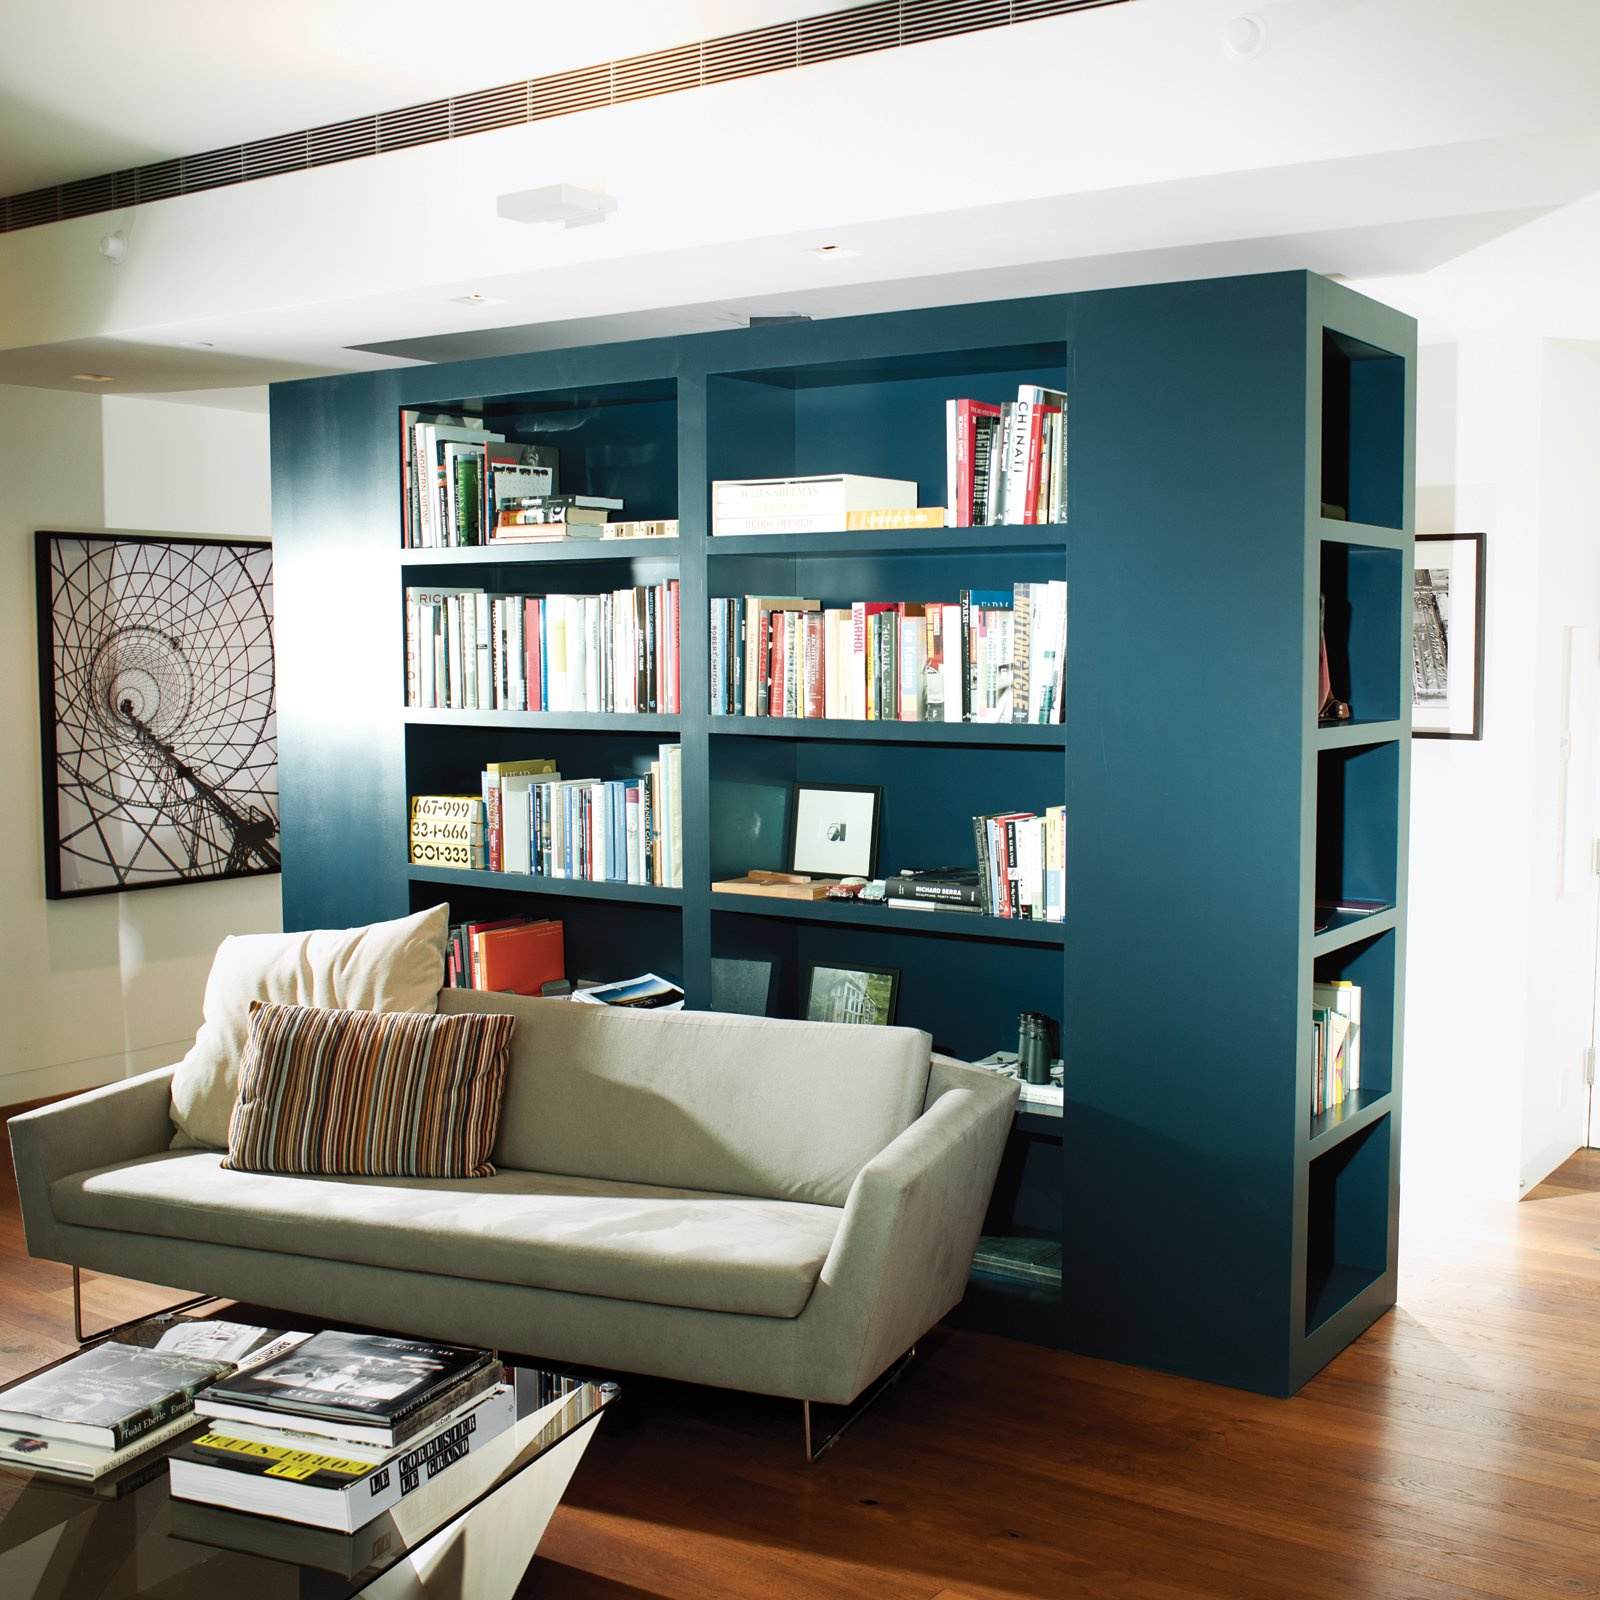 Calder Smith created the custom bookcase to delineate the seating area and the entrance hallway.  Storage by Dwell from High-Rise Living in Manhattan